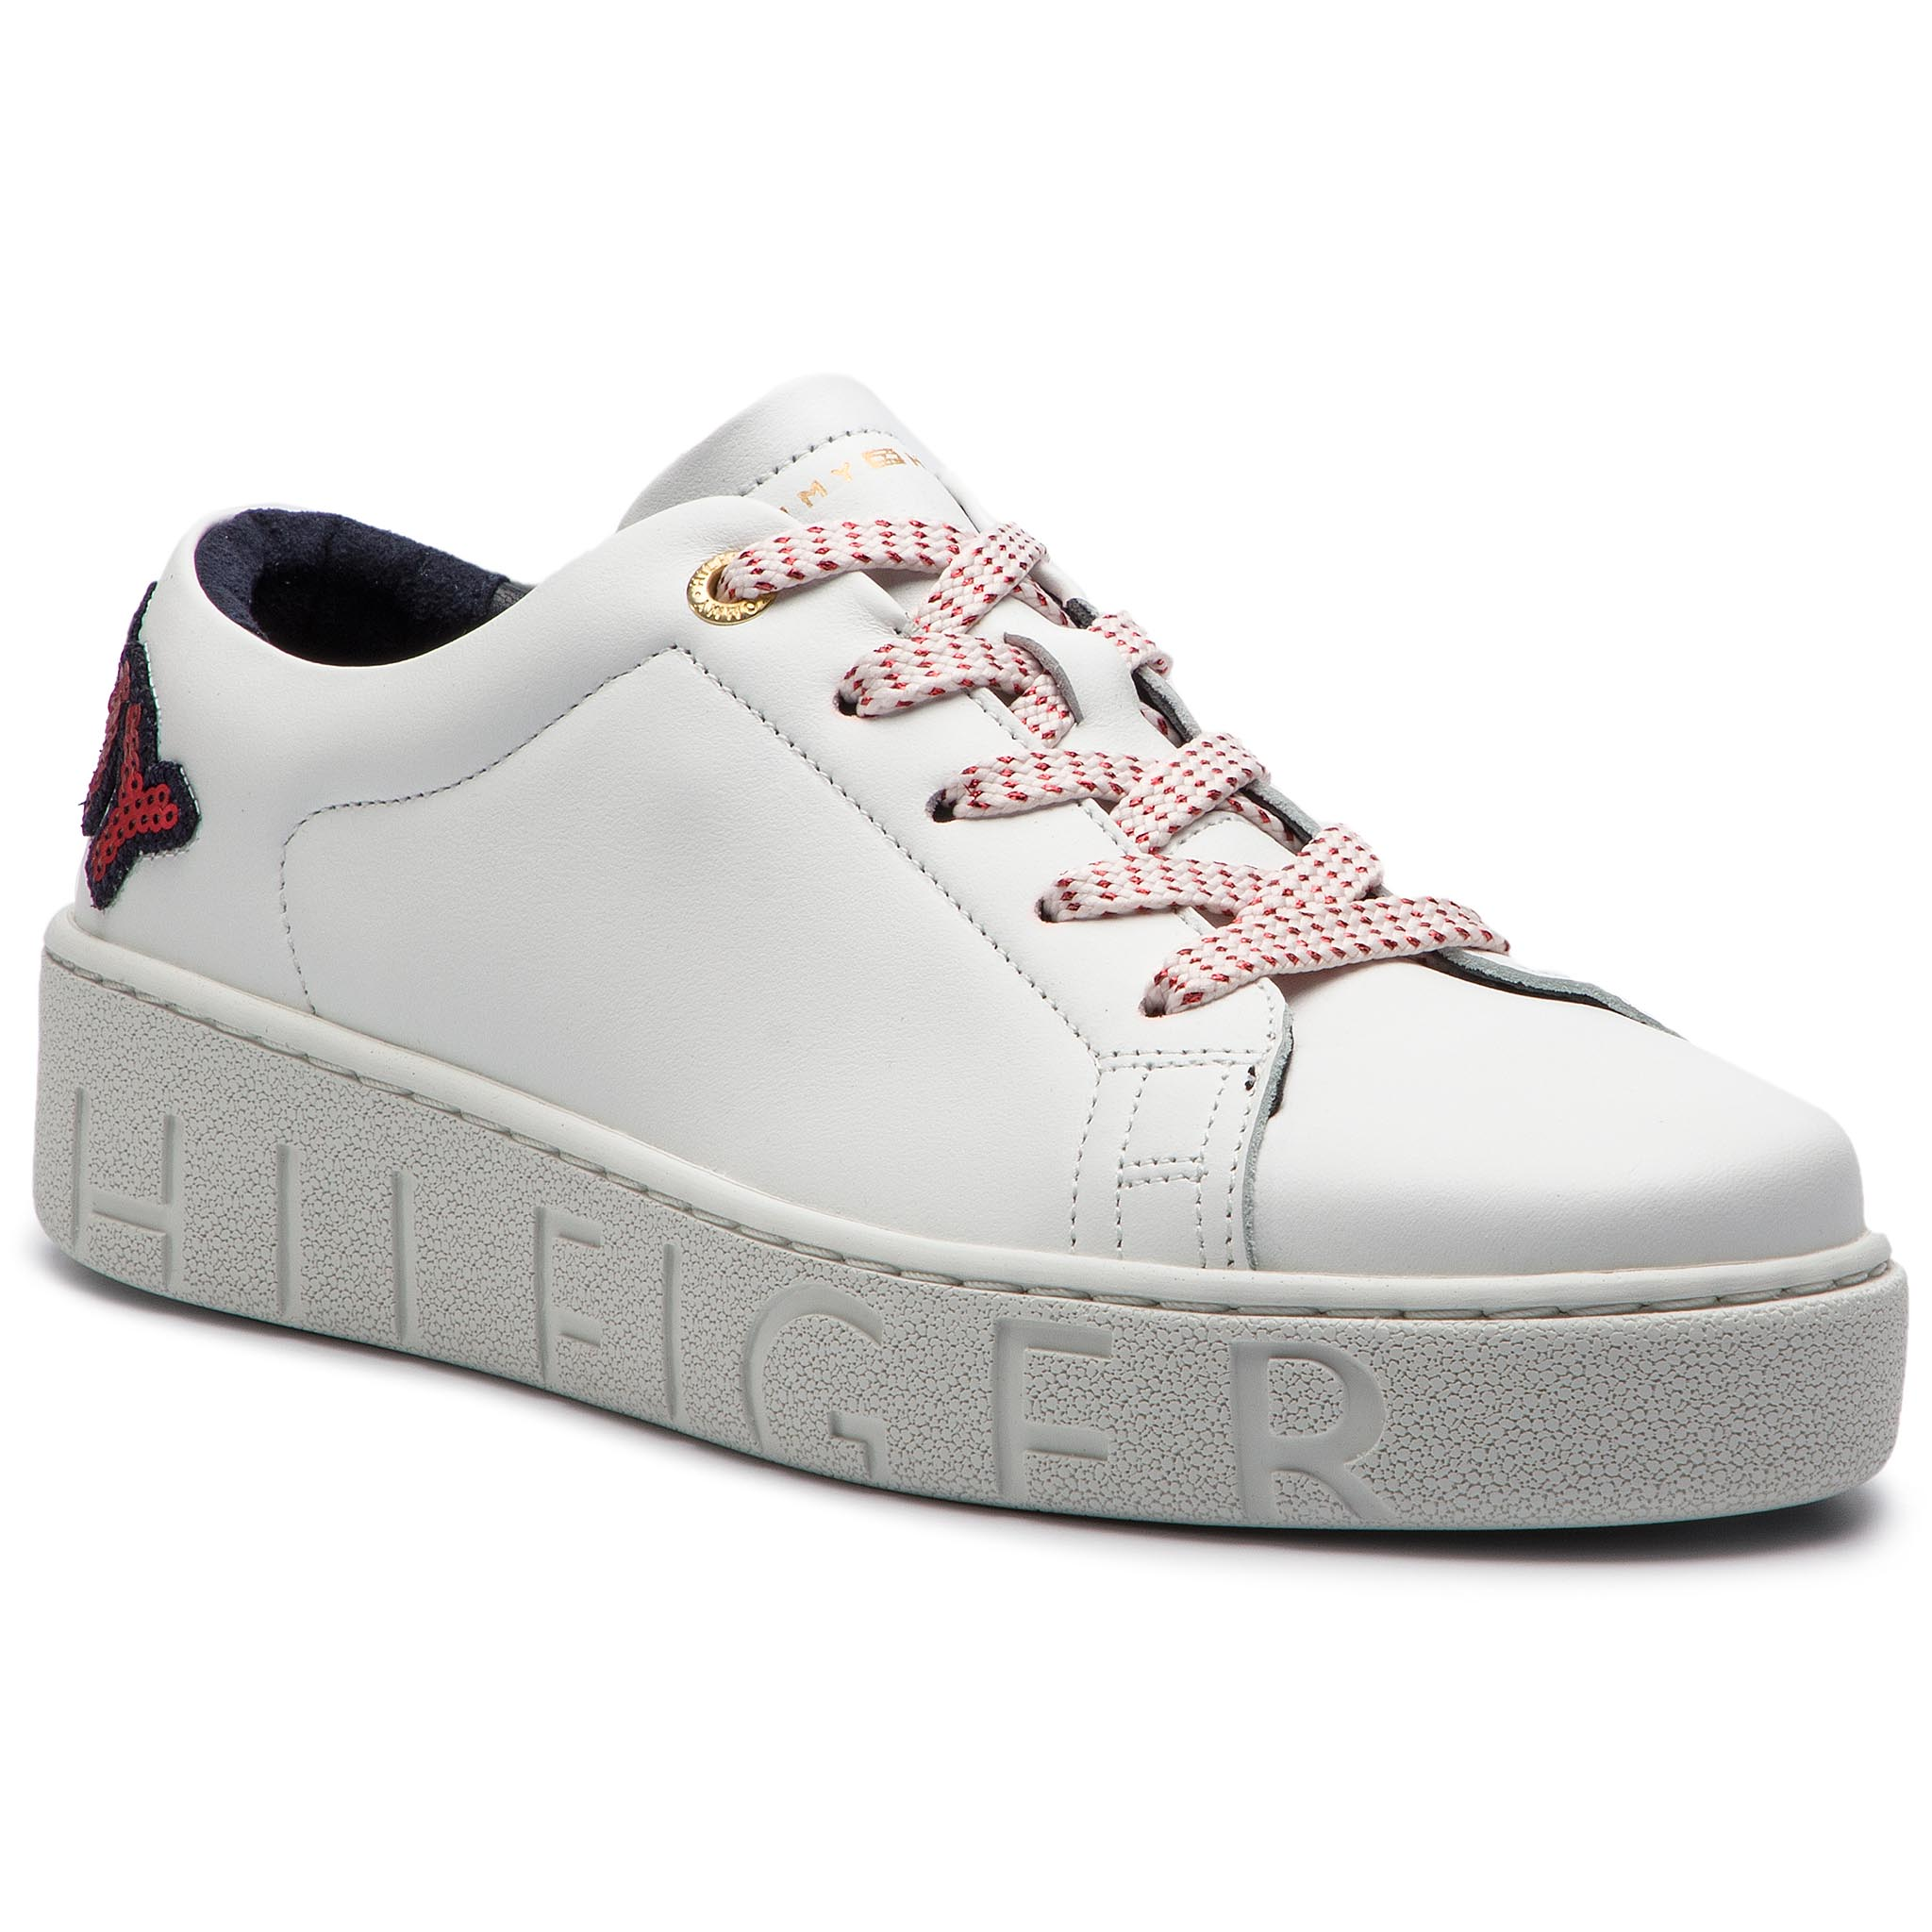 876623d481 Sneakersy TOMMY HILFIGER - Tommy Fashion Sneaker FW0FW03689 White ...